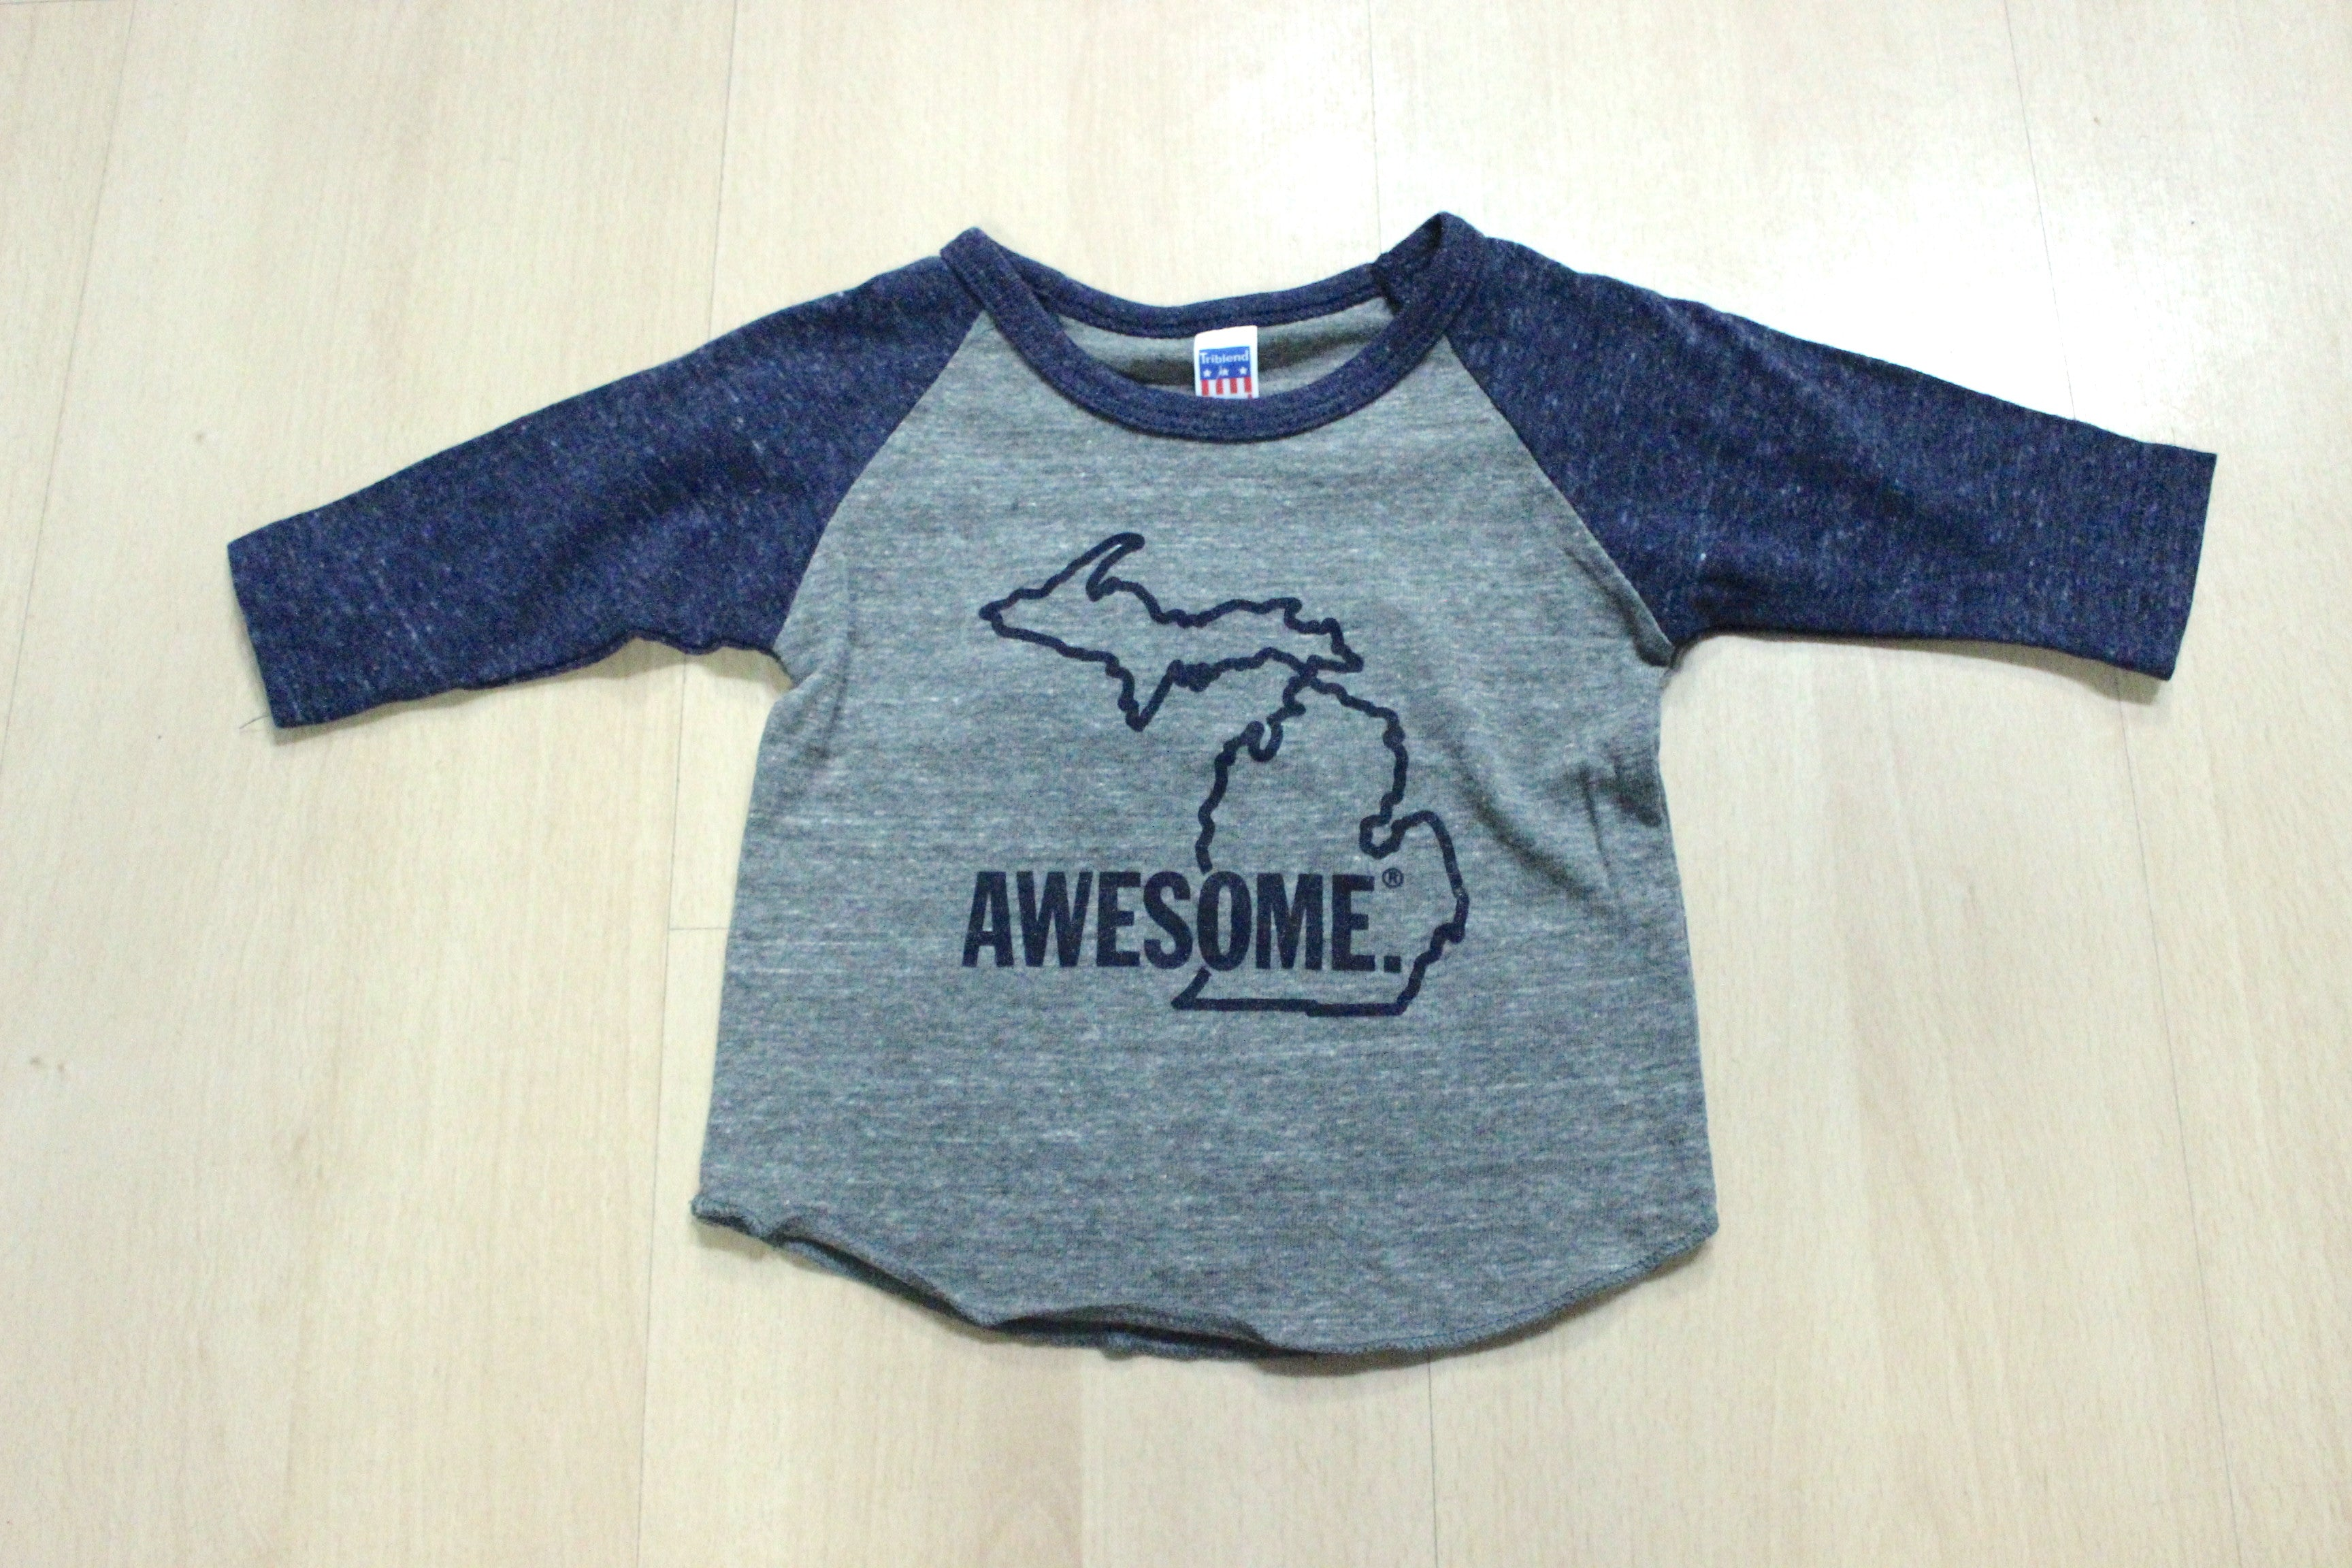 3 4 Sleeve Michigan Awesome Baby Tri Blend Tee Available in Navy